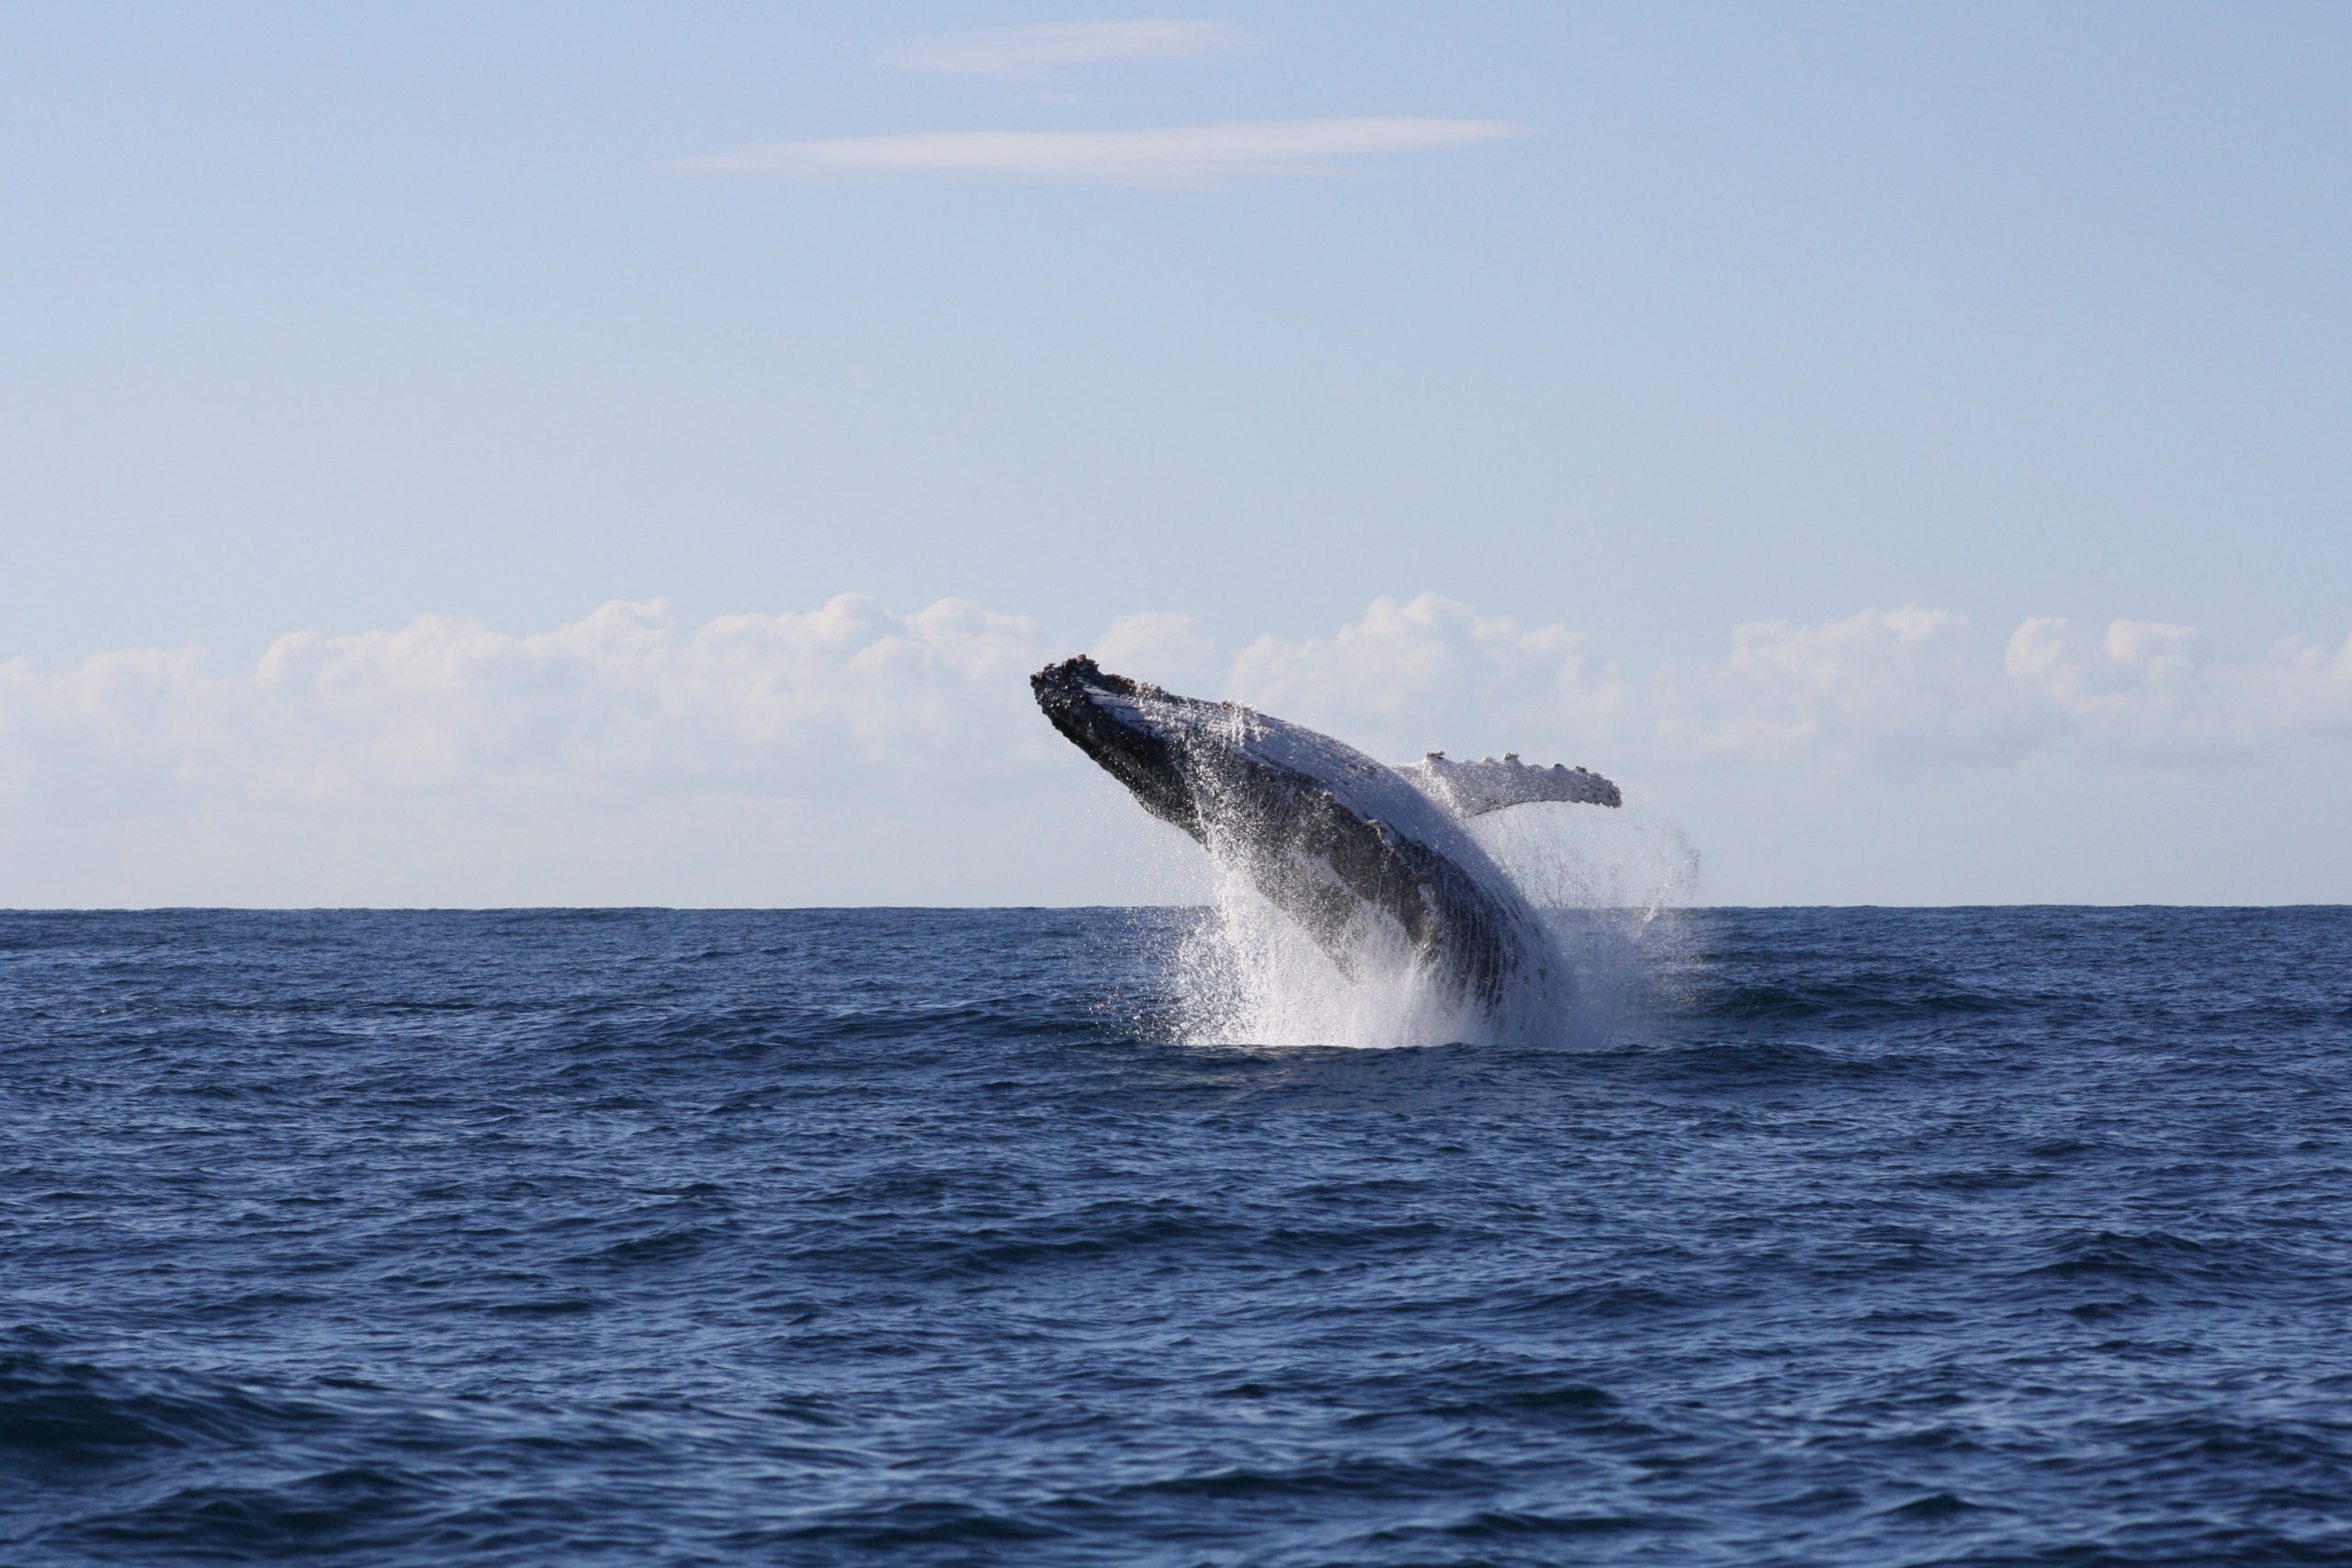 TOT - Whale photo